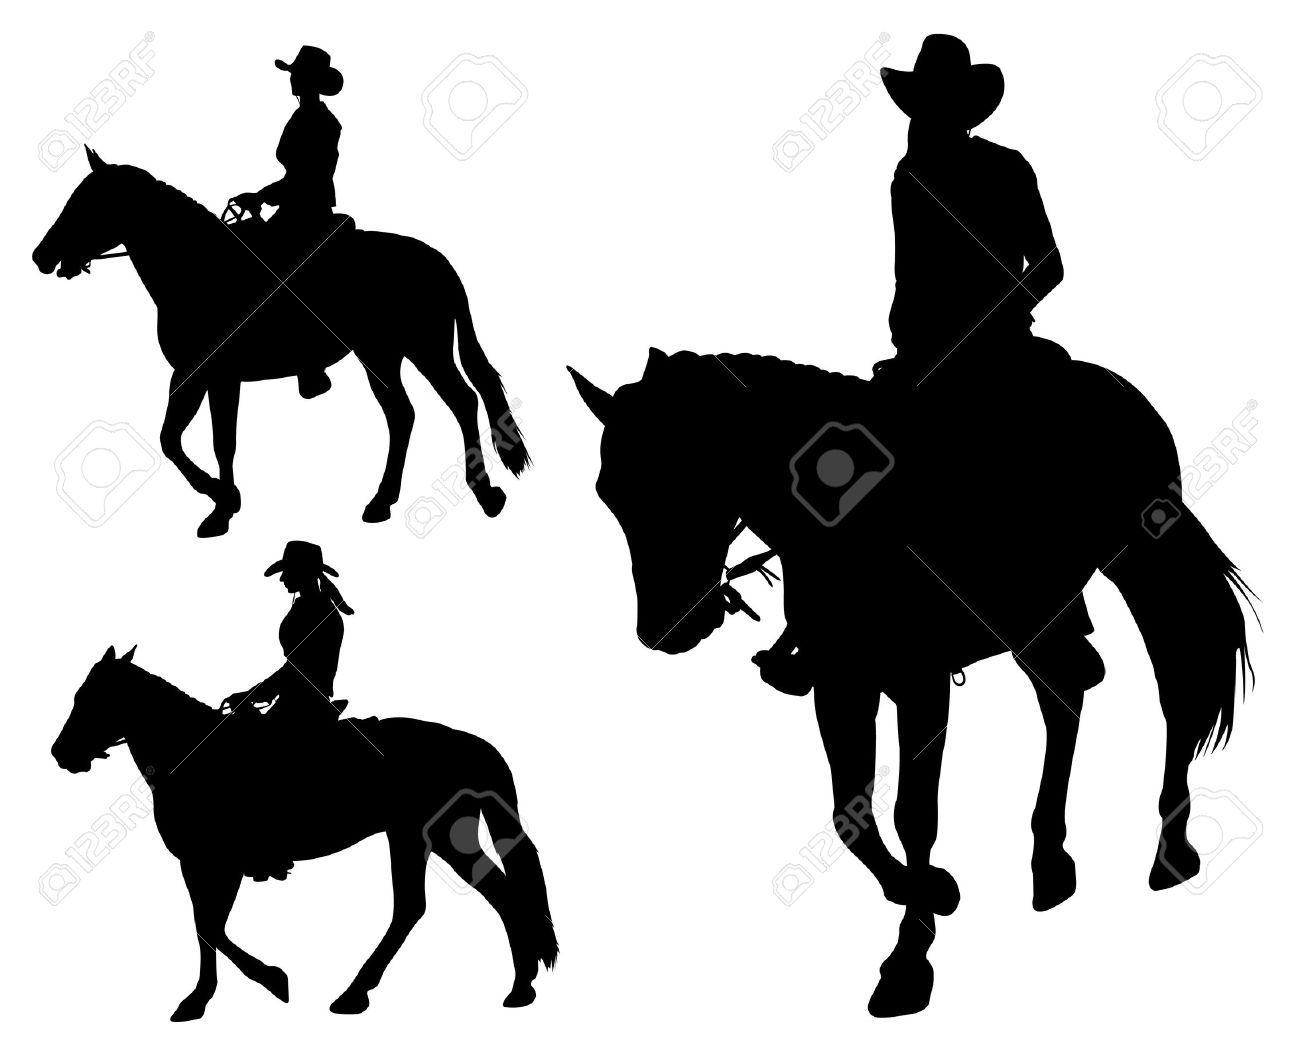 Cowgirl Riding Horse Silhouettes Royalty Free Cliparts Vectors And Stock Illustration Image 20626624